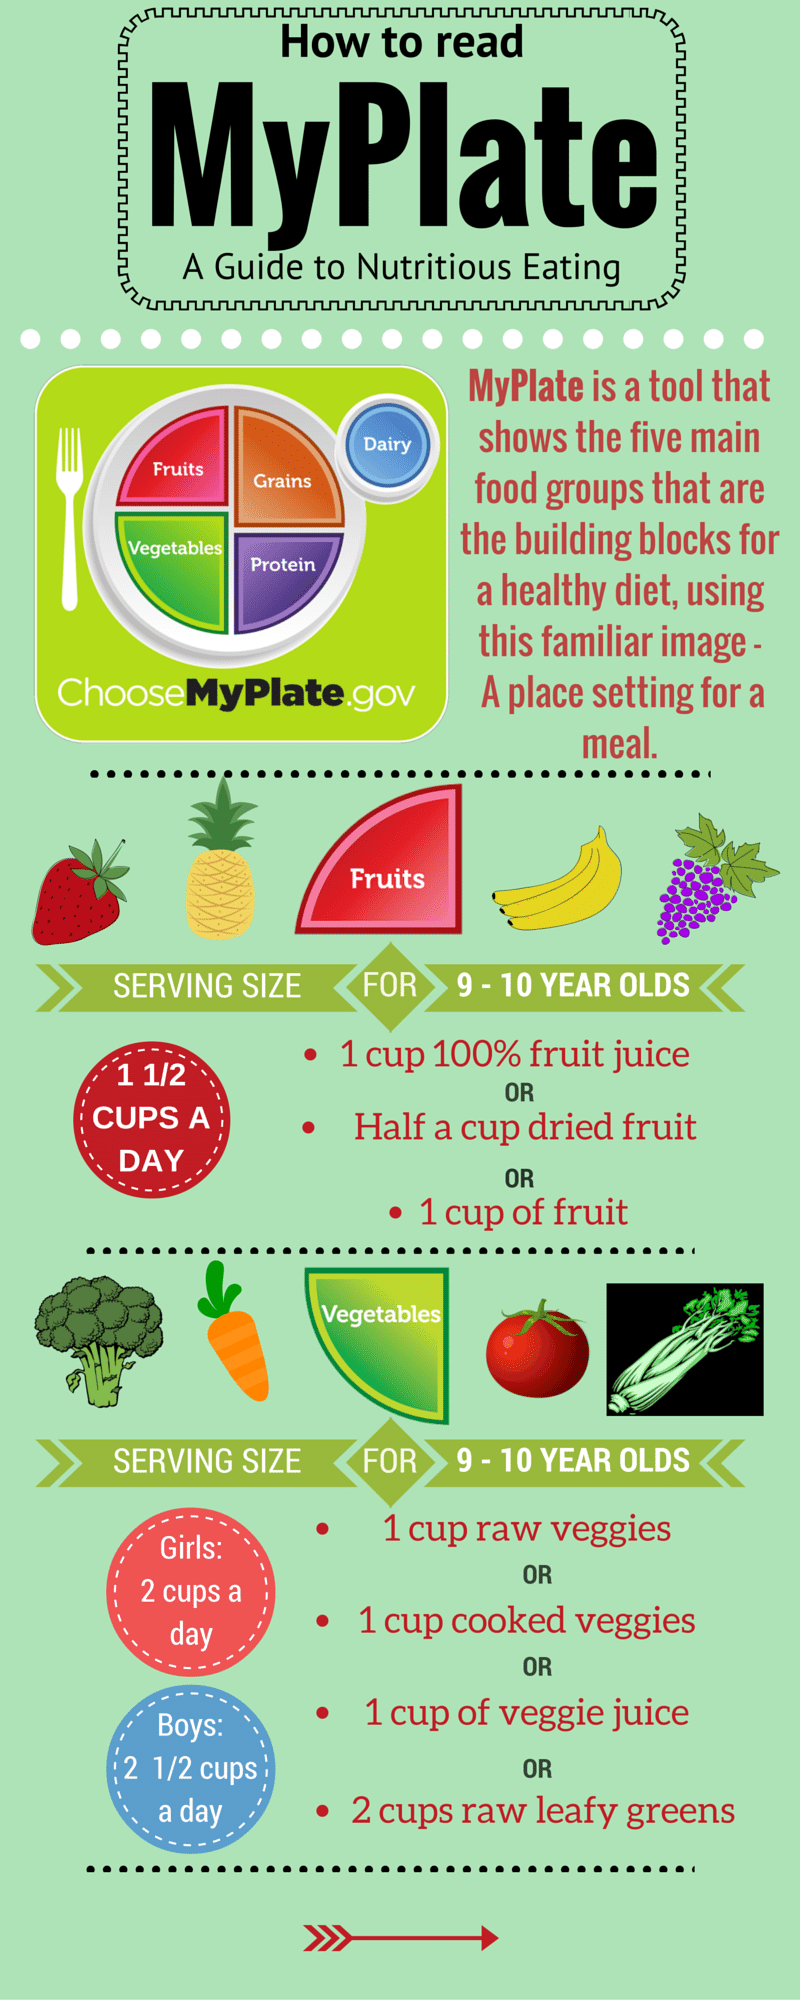 What is Myplate Serving Sizes for 910 year olds (4th